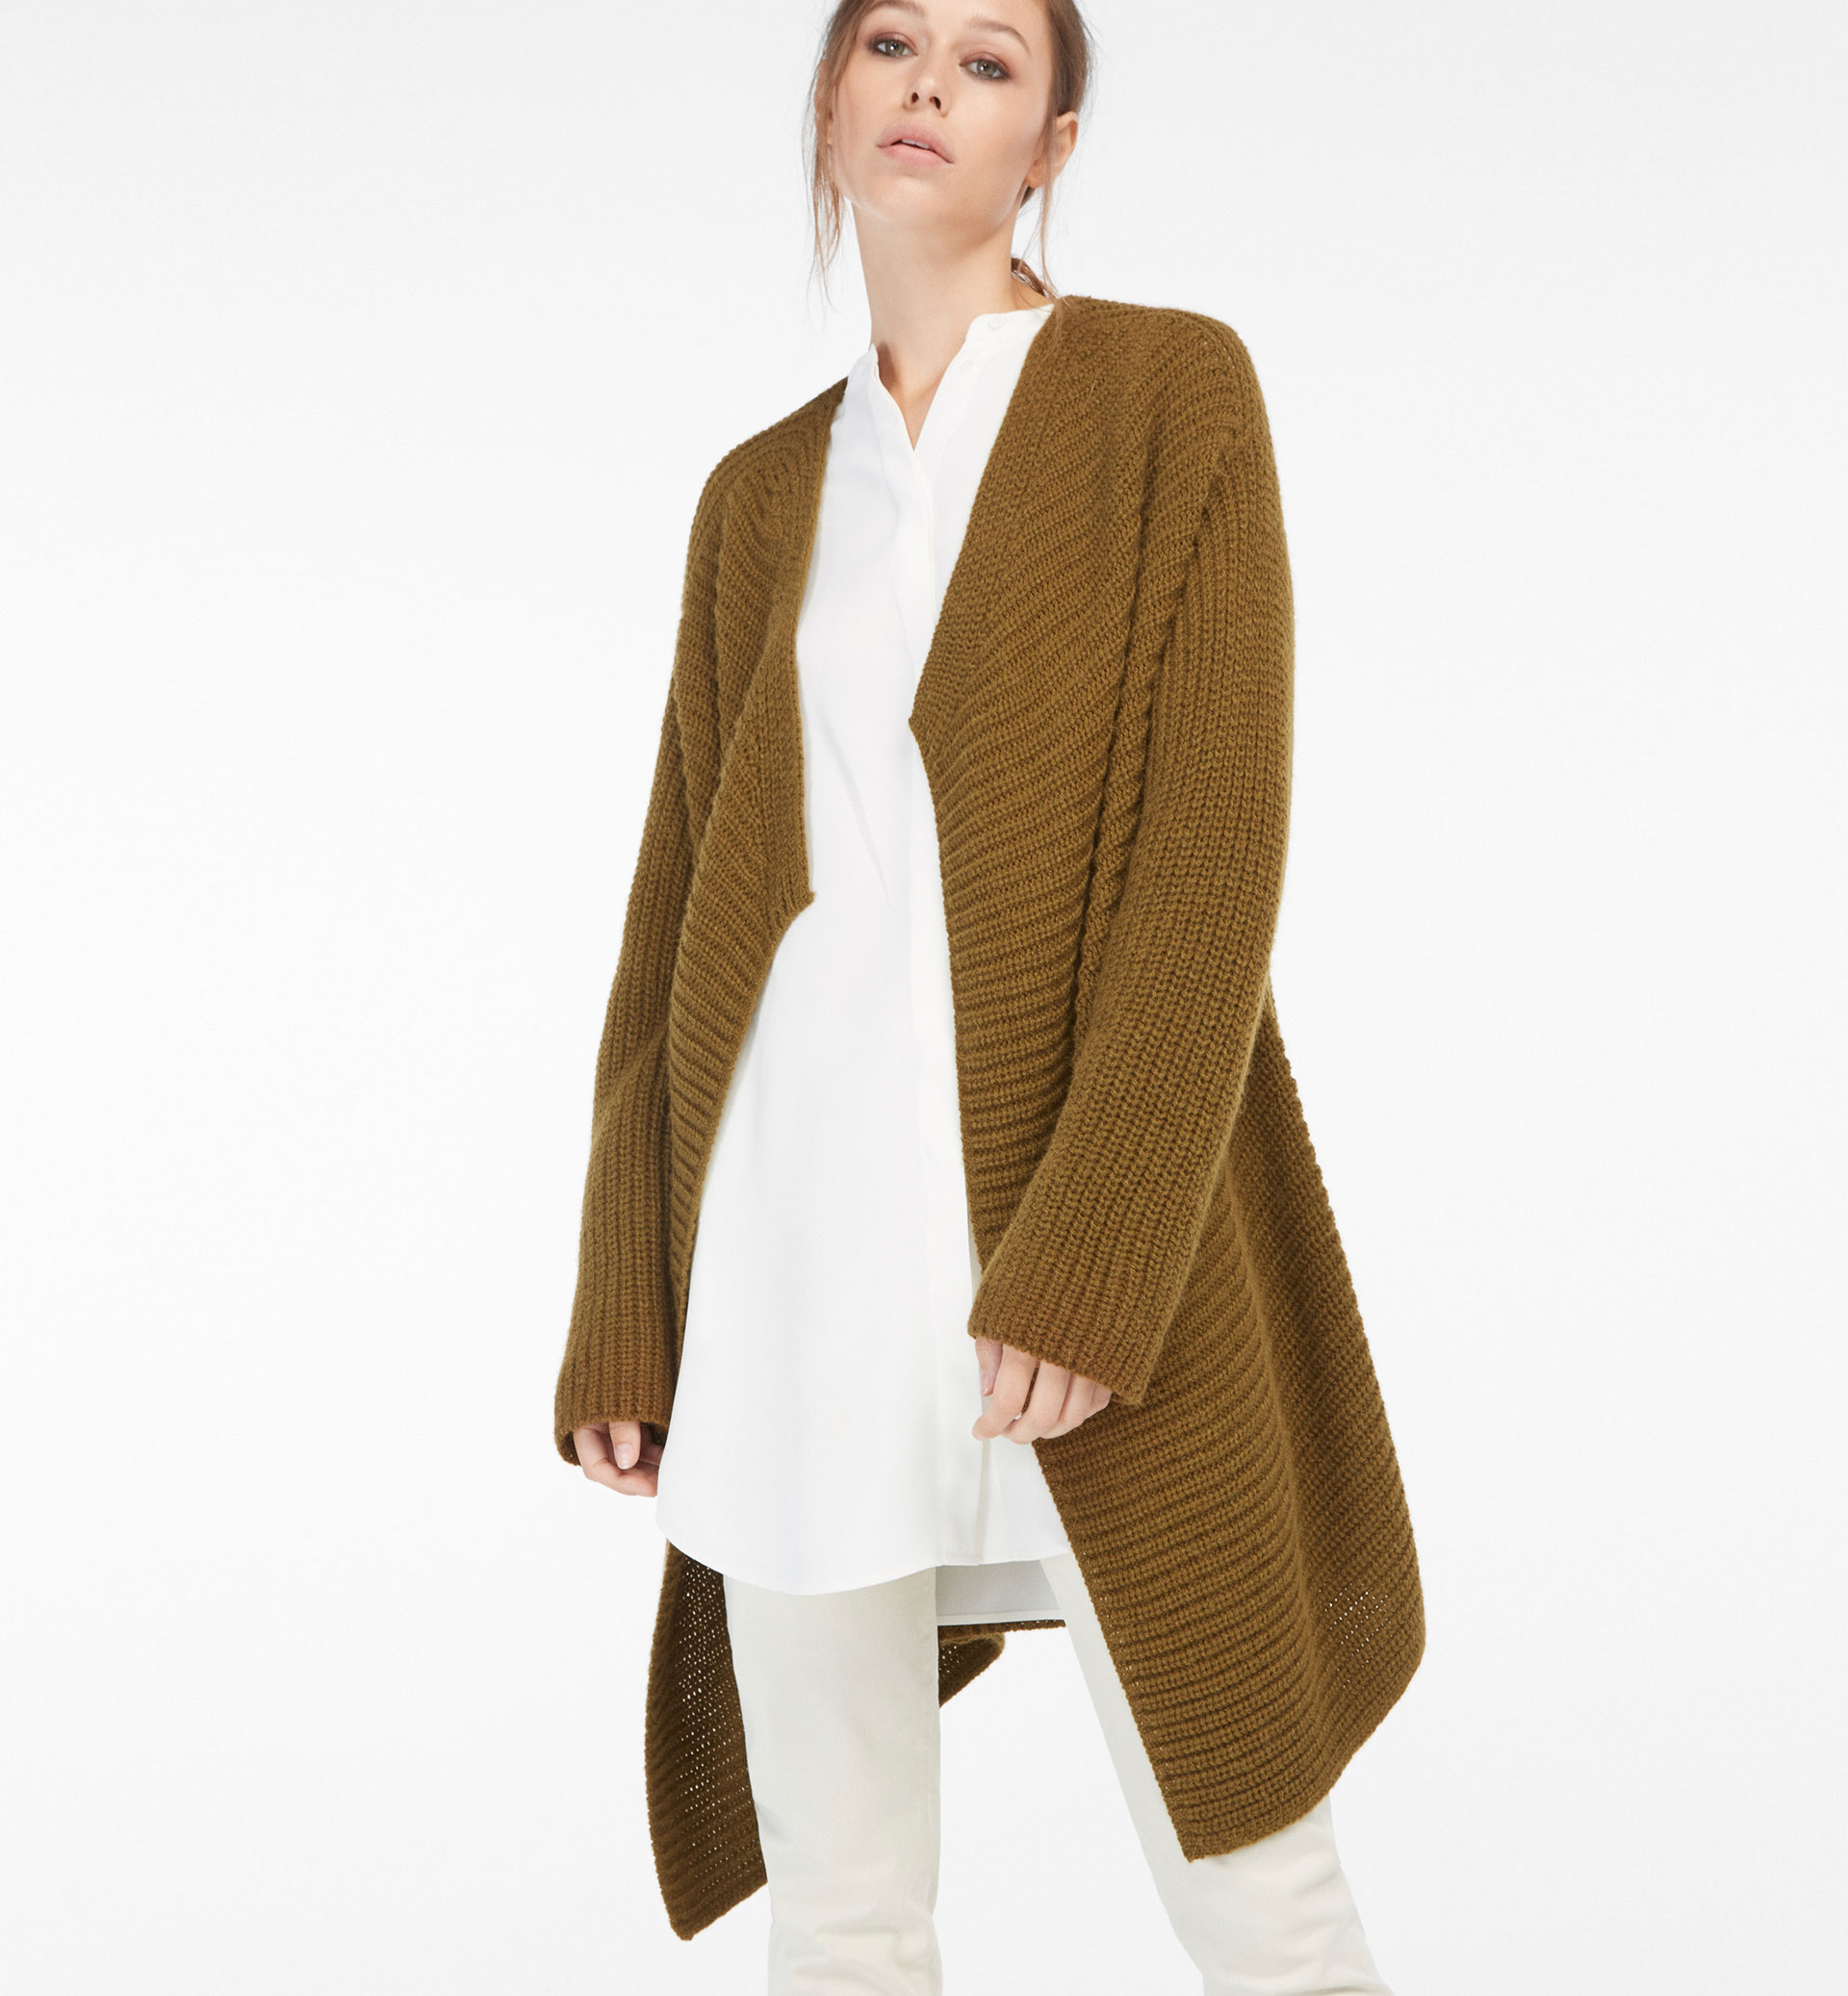 EDGE-TO-EDGE STRUCTURED CARDIGAN